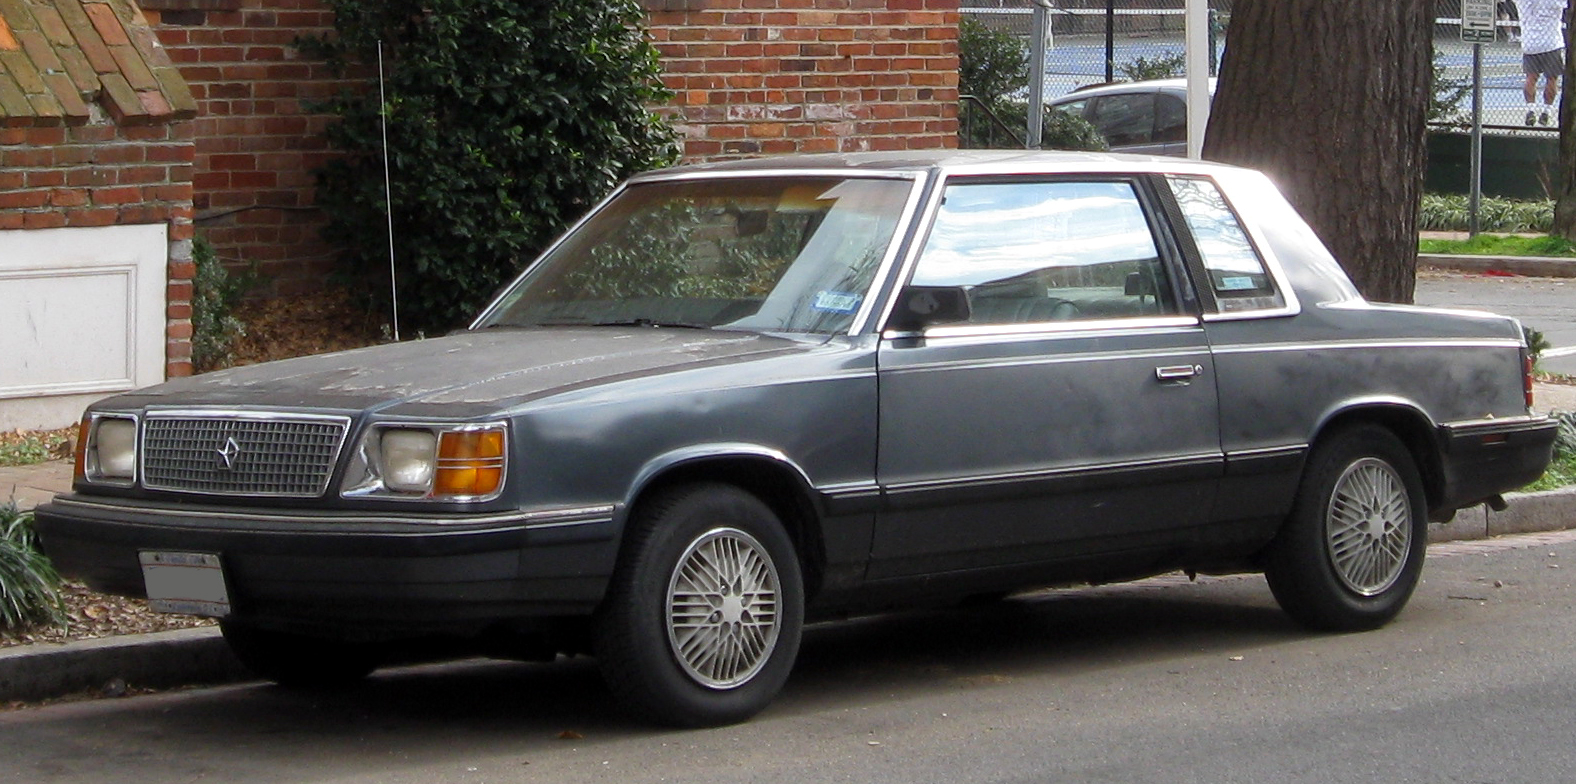 Plymouth Reliant 1989 #3